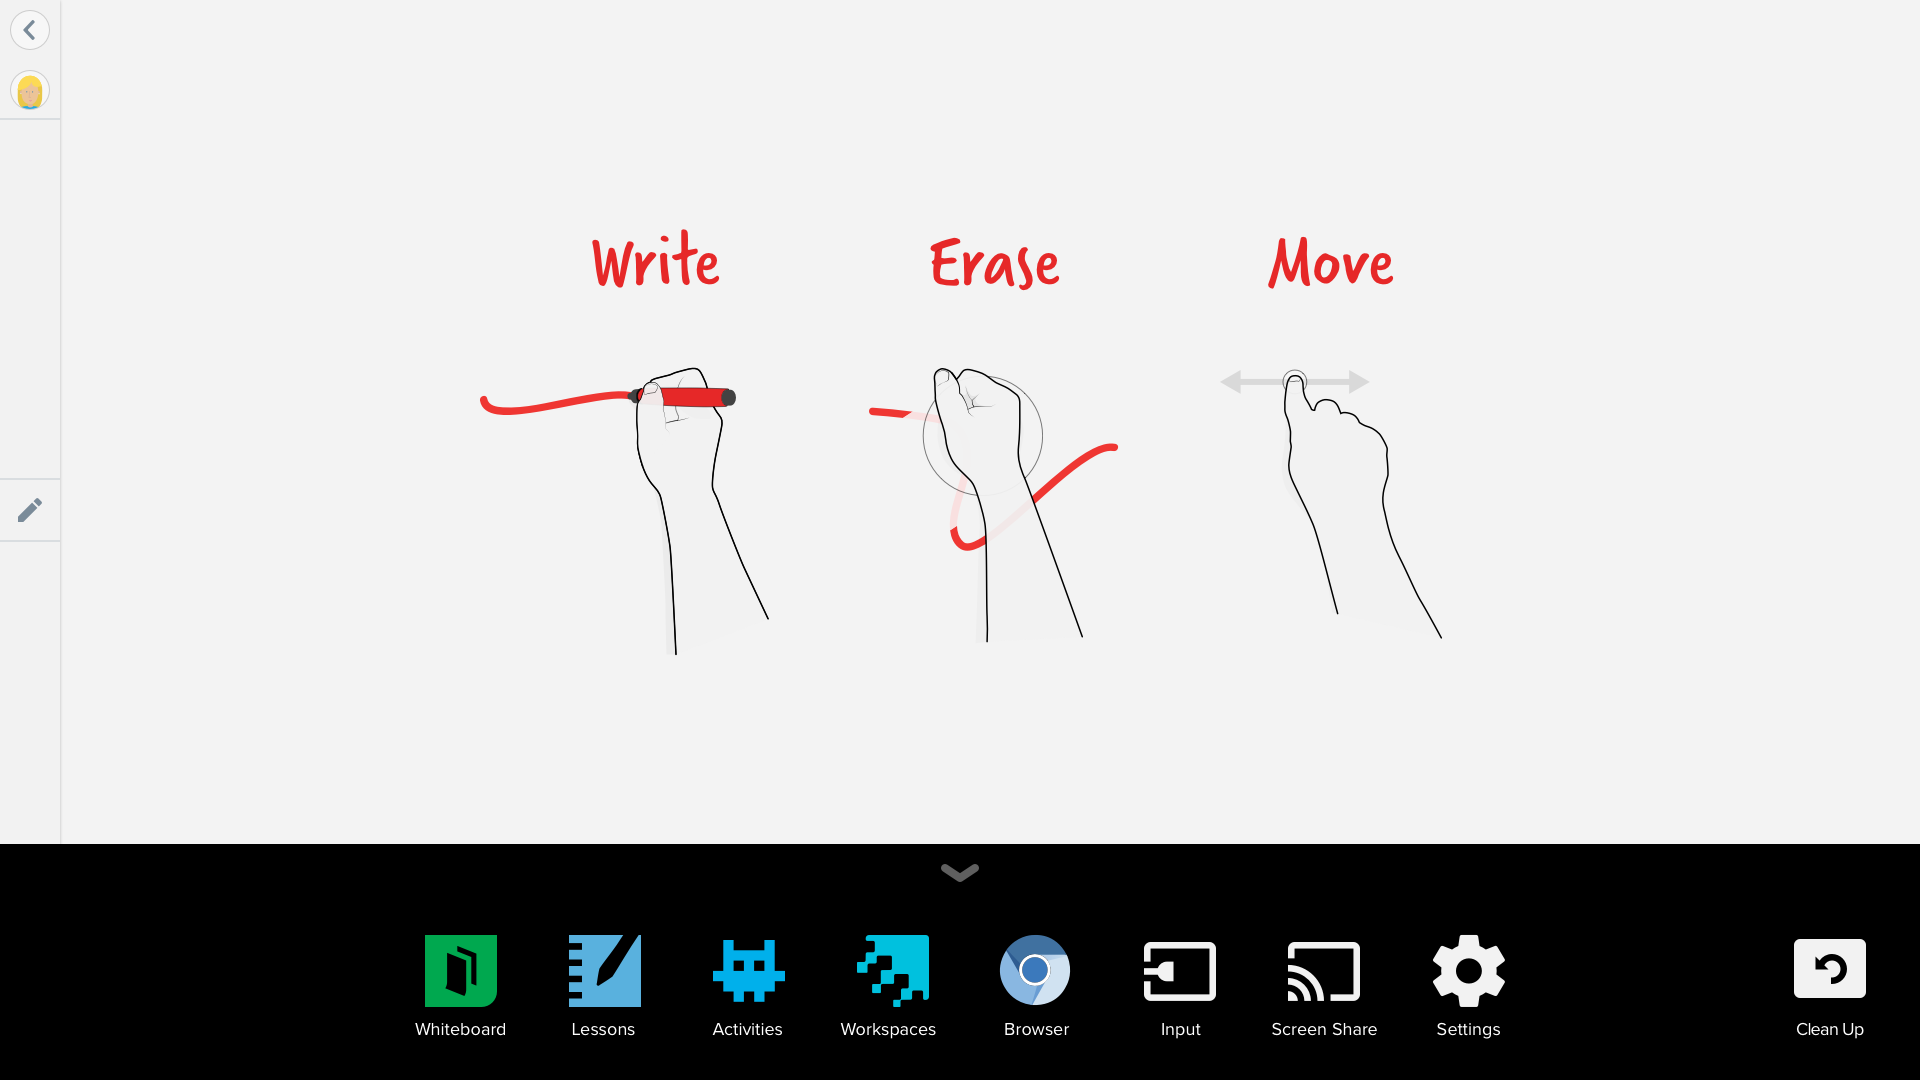 SMART Board Embedded Experience - Whiteboard application - App launcher open